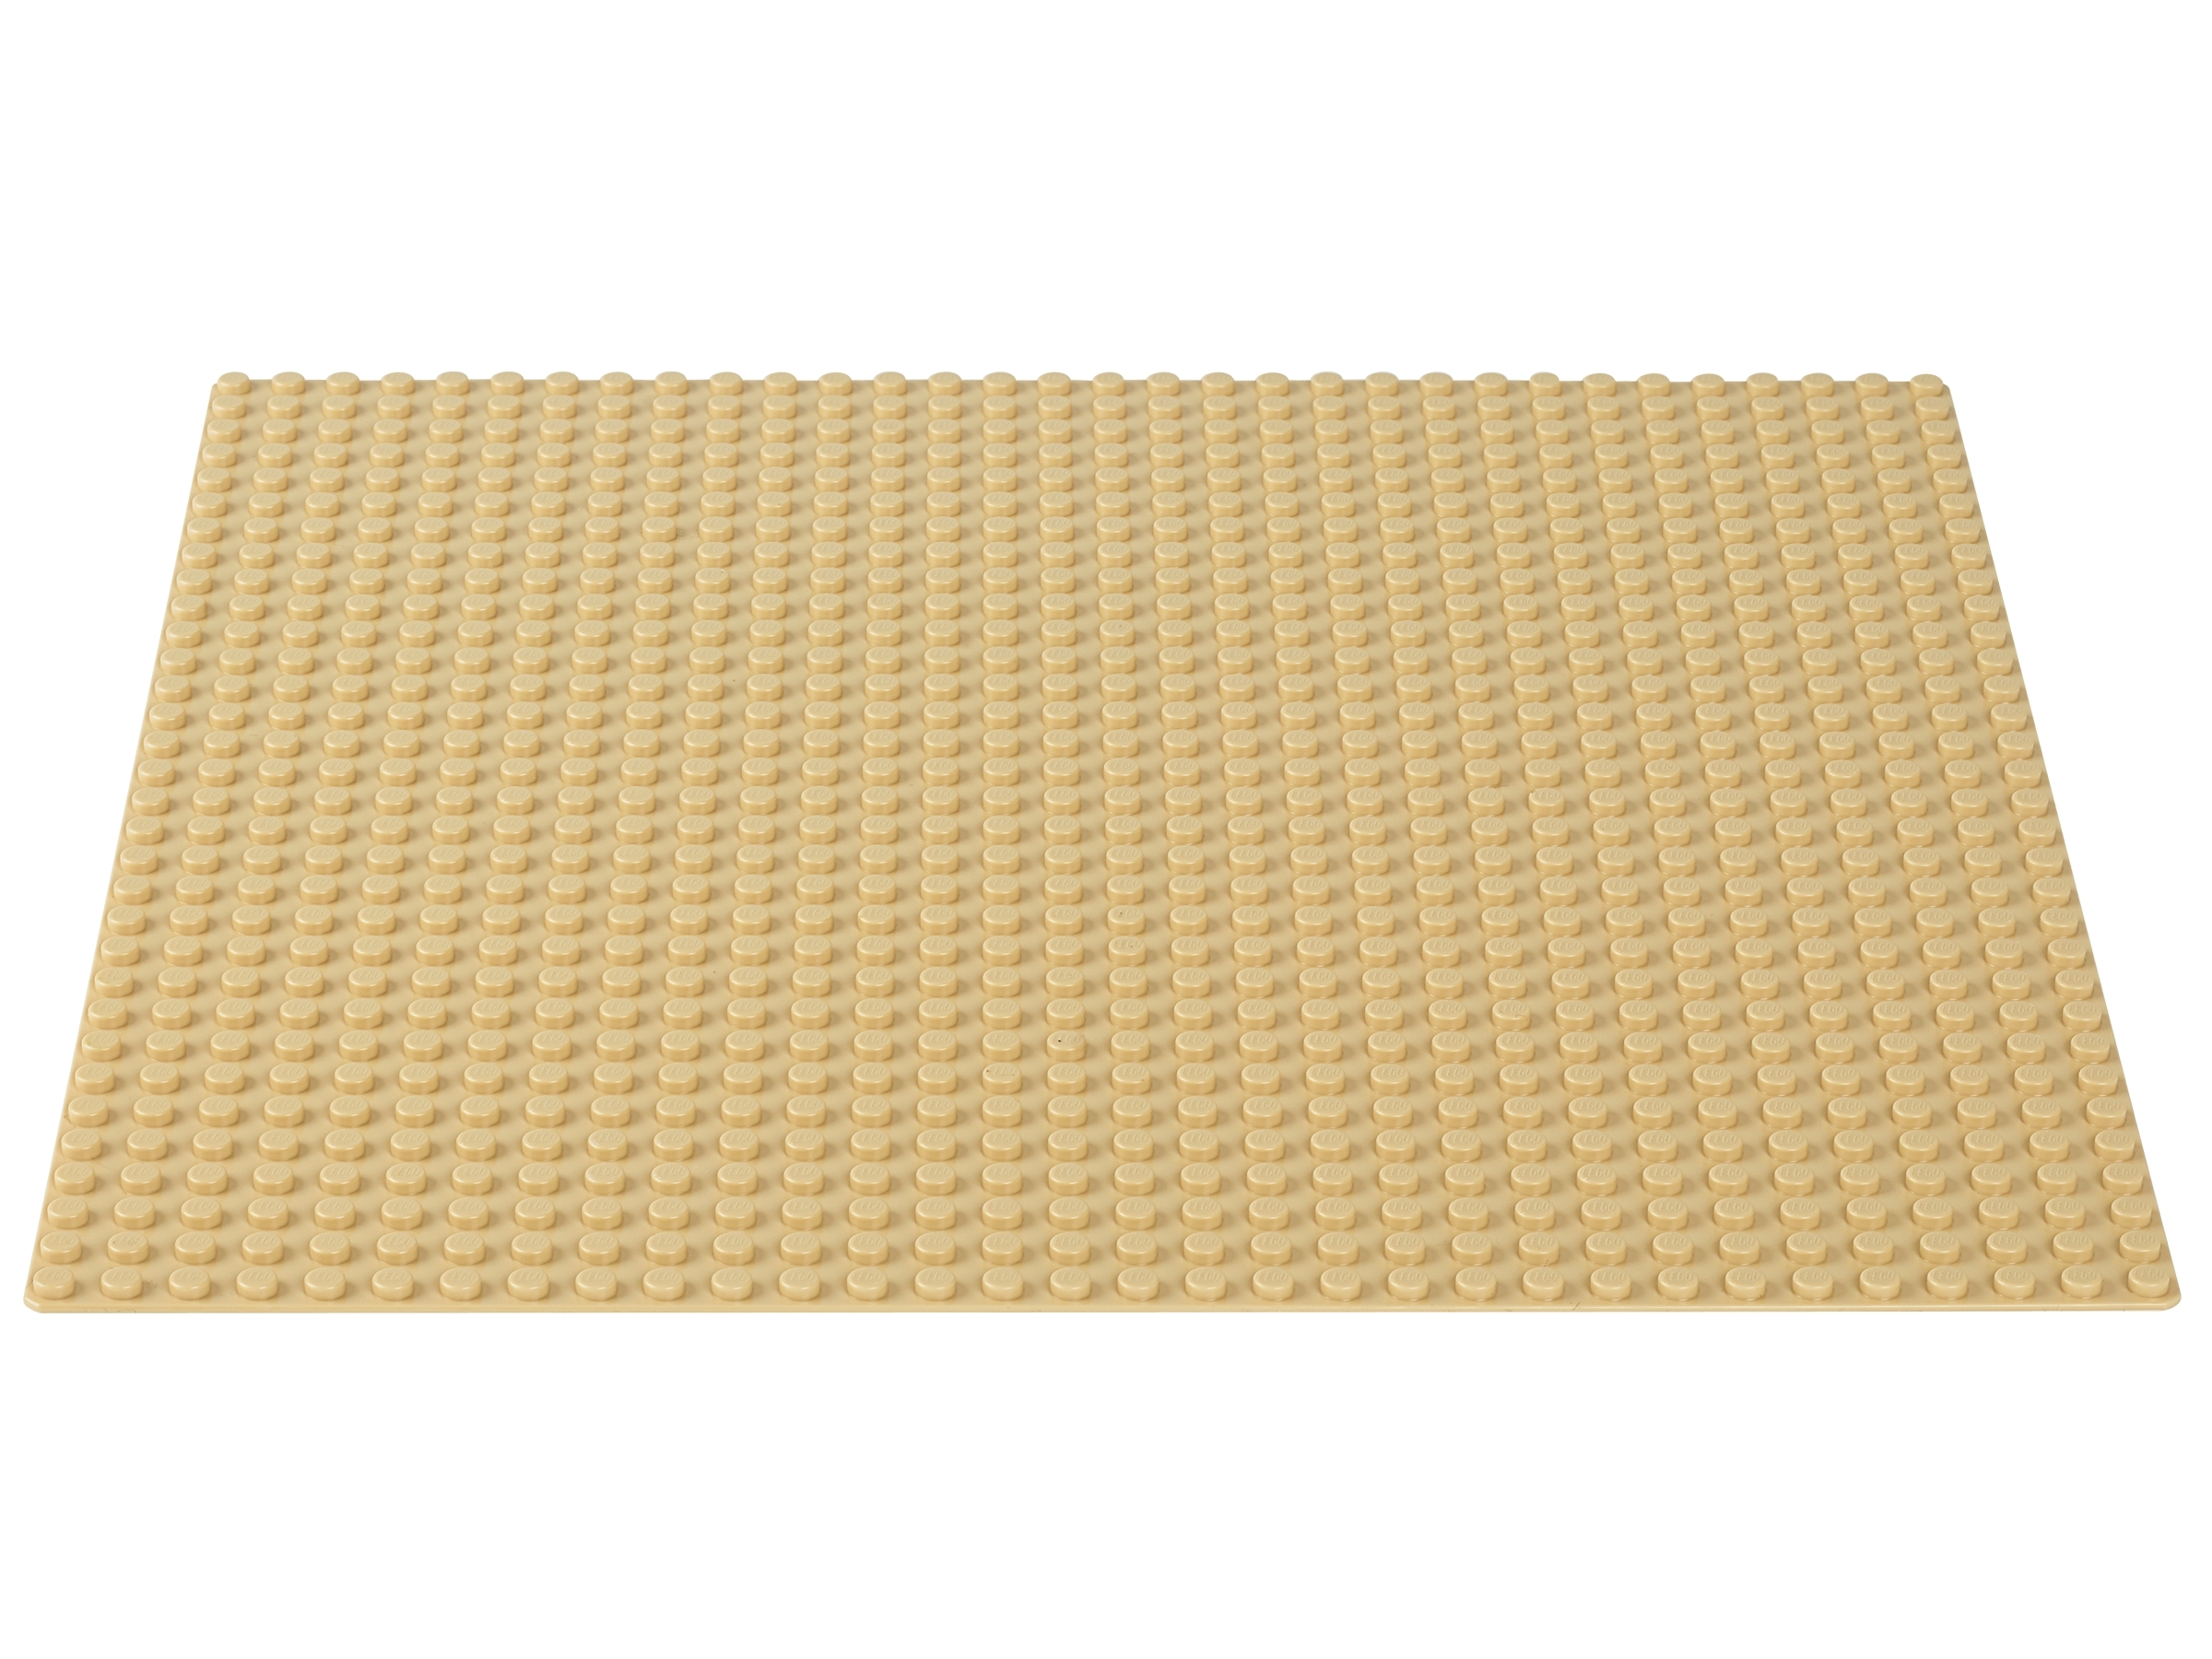 """Lego Classic Sand Baseplate Toy Game Kids Play Gift Measures 32X32 Studs Or 10/"""""""